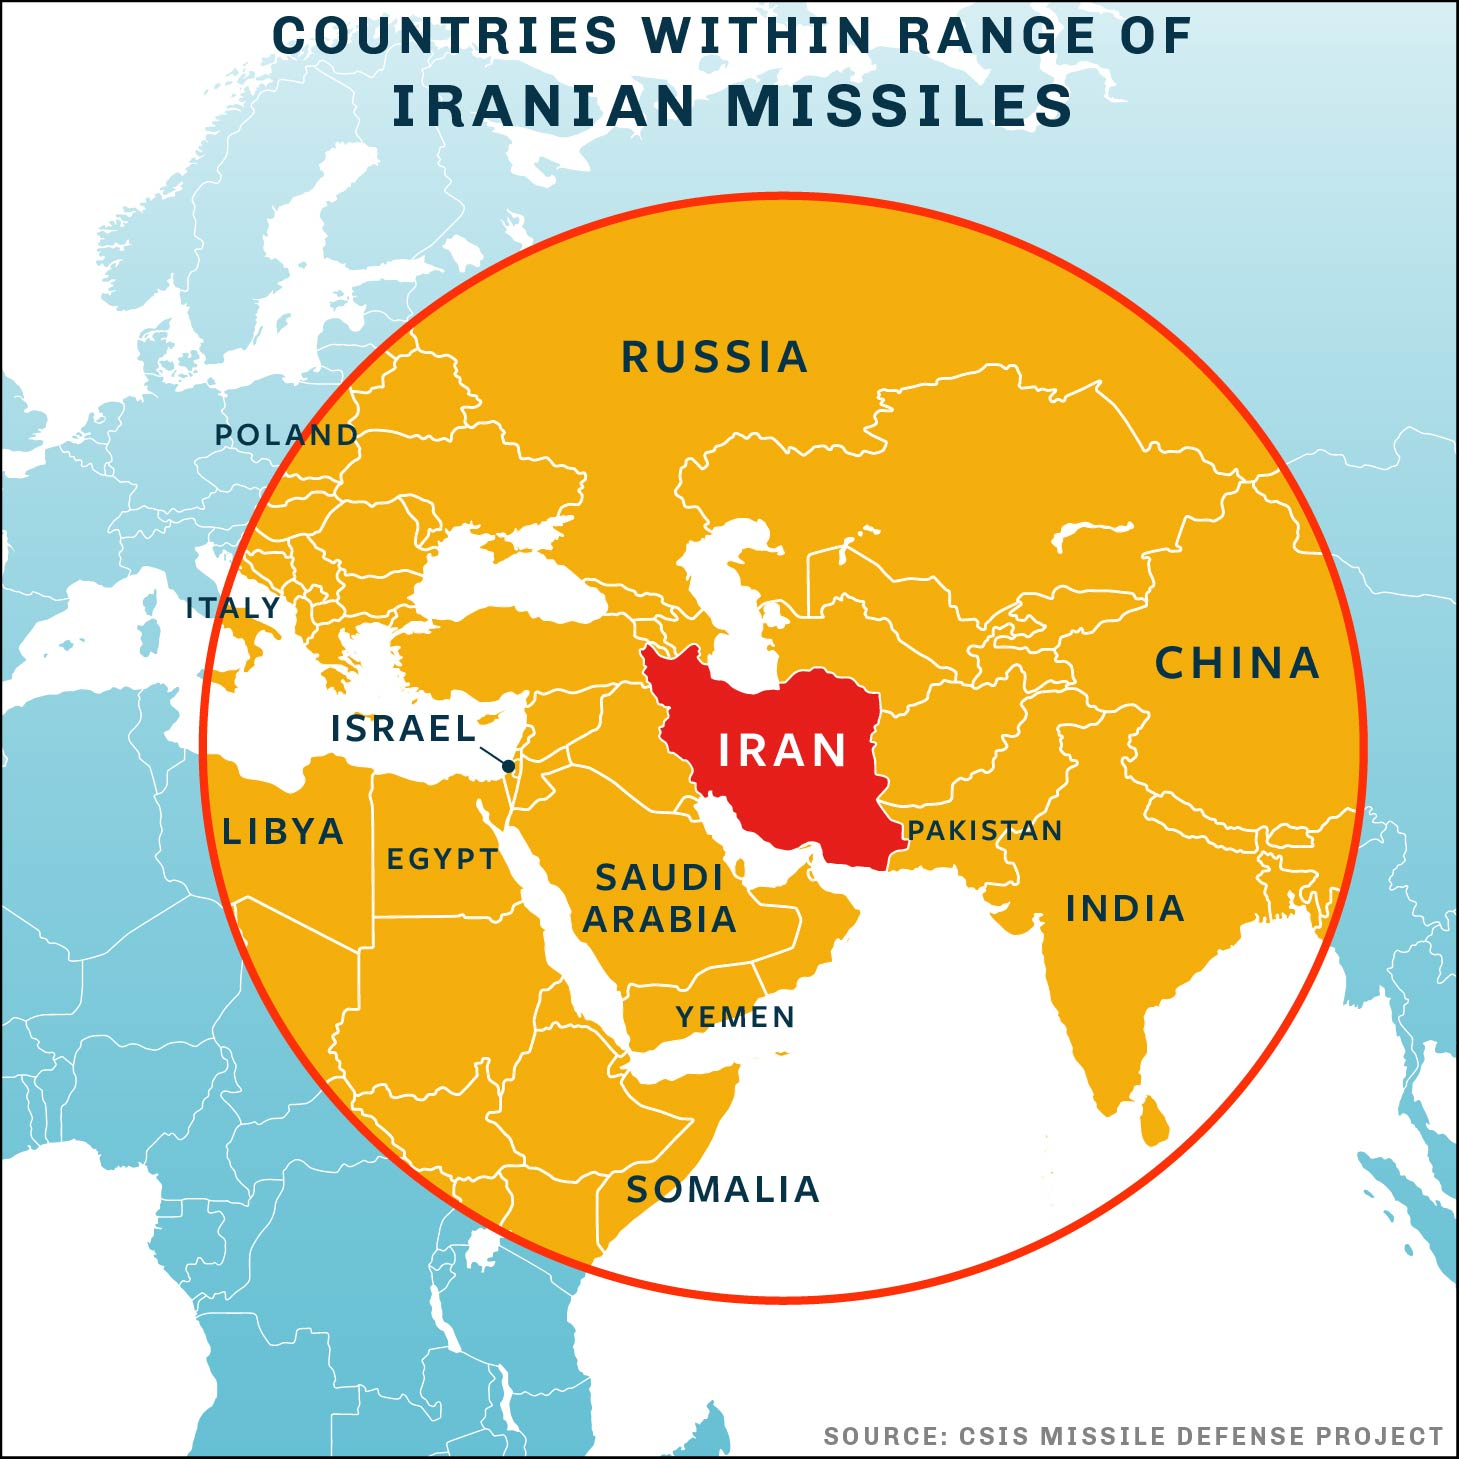 Map of countries within range of Iranian missiles (State Dept./S. Gemeny Wilkinson SOURCE: CSIS Missile Defense Project)